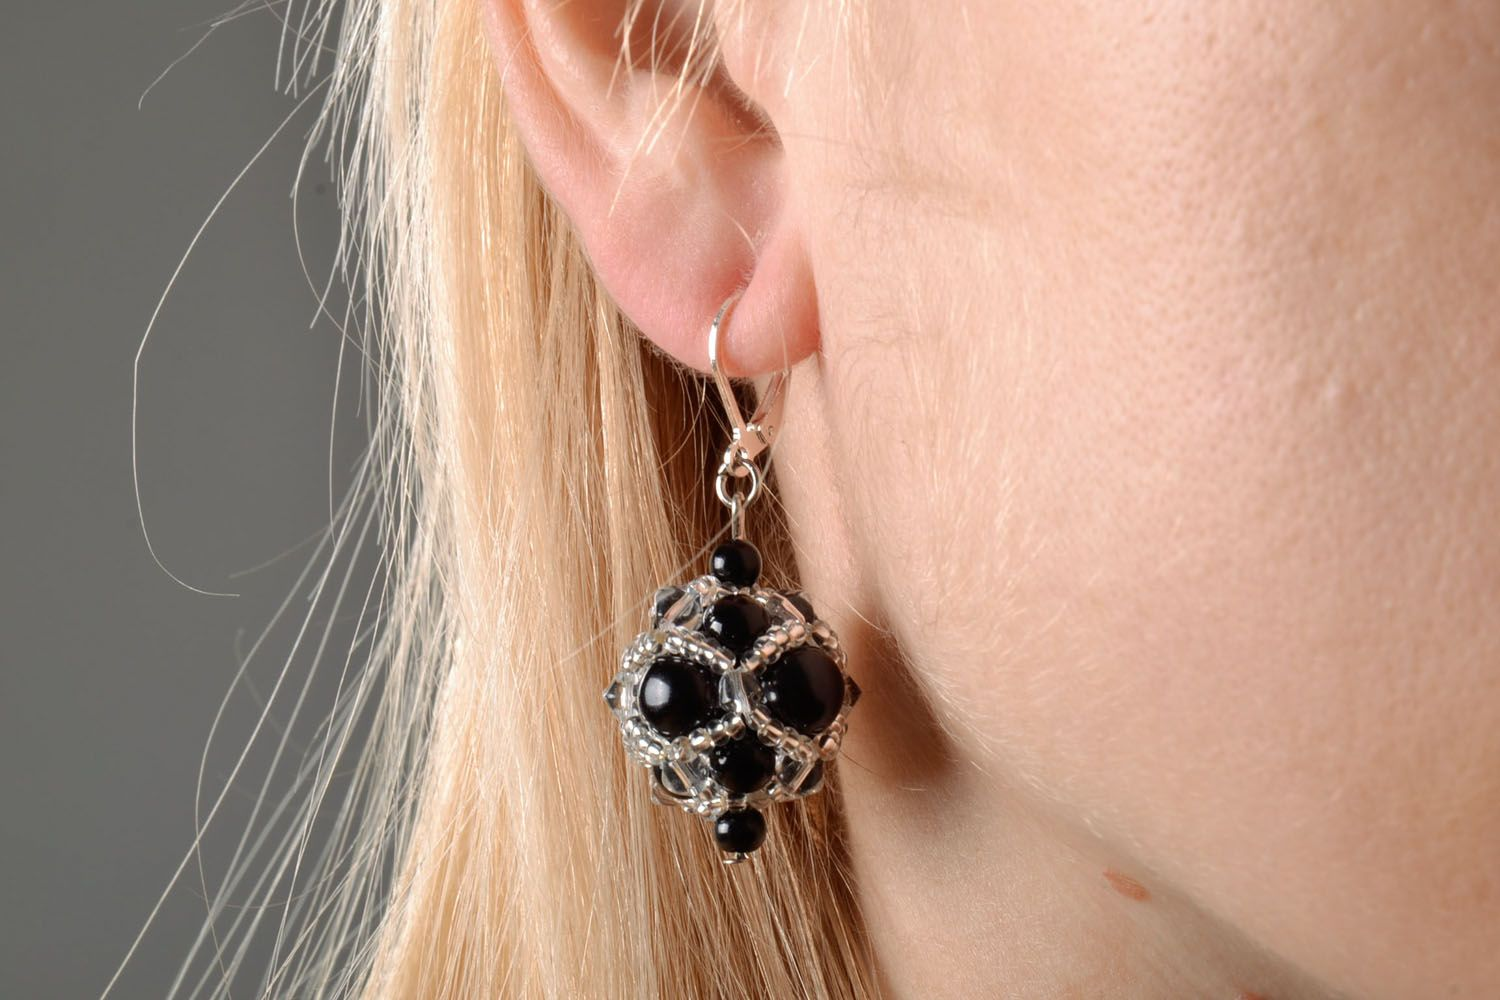 Evening earrings with black beads photo 5